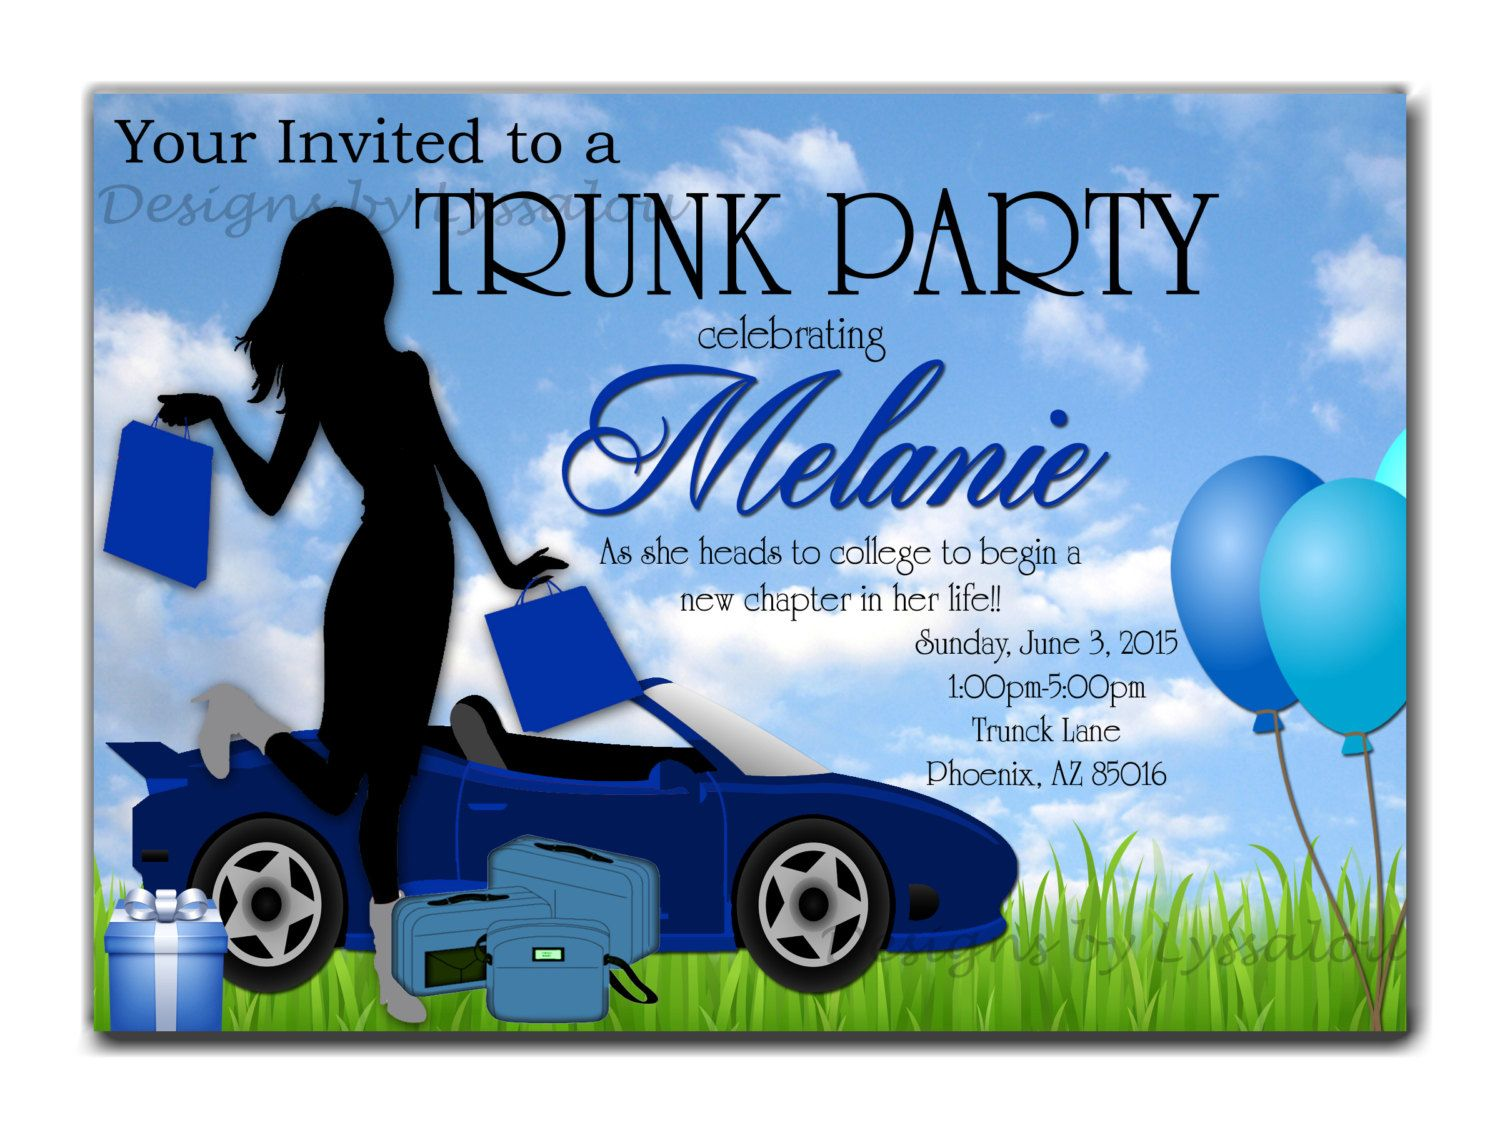 How to Select the Trunk Party Invitations Templates Designs